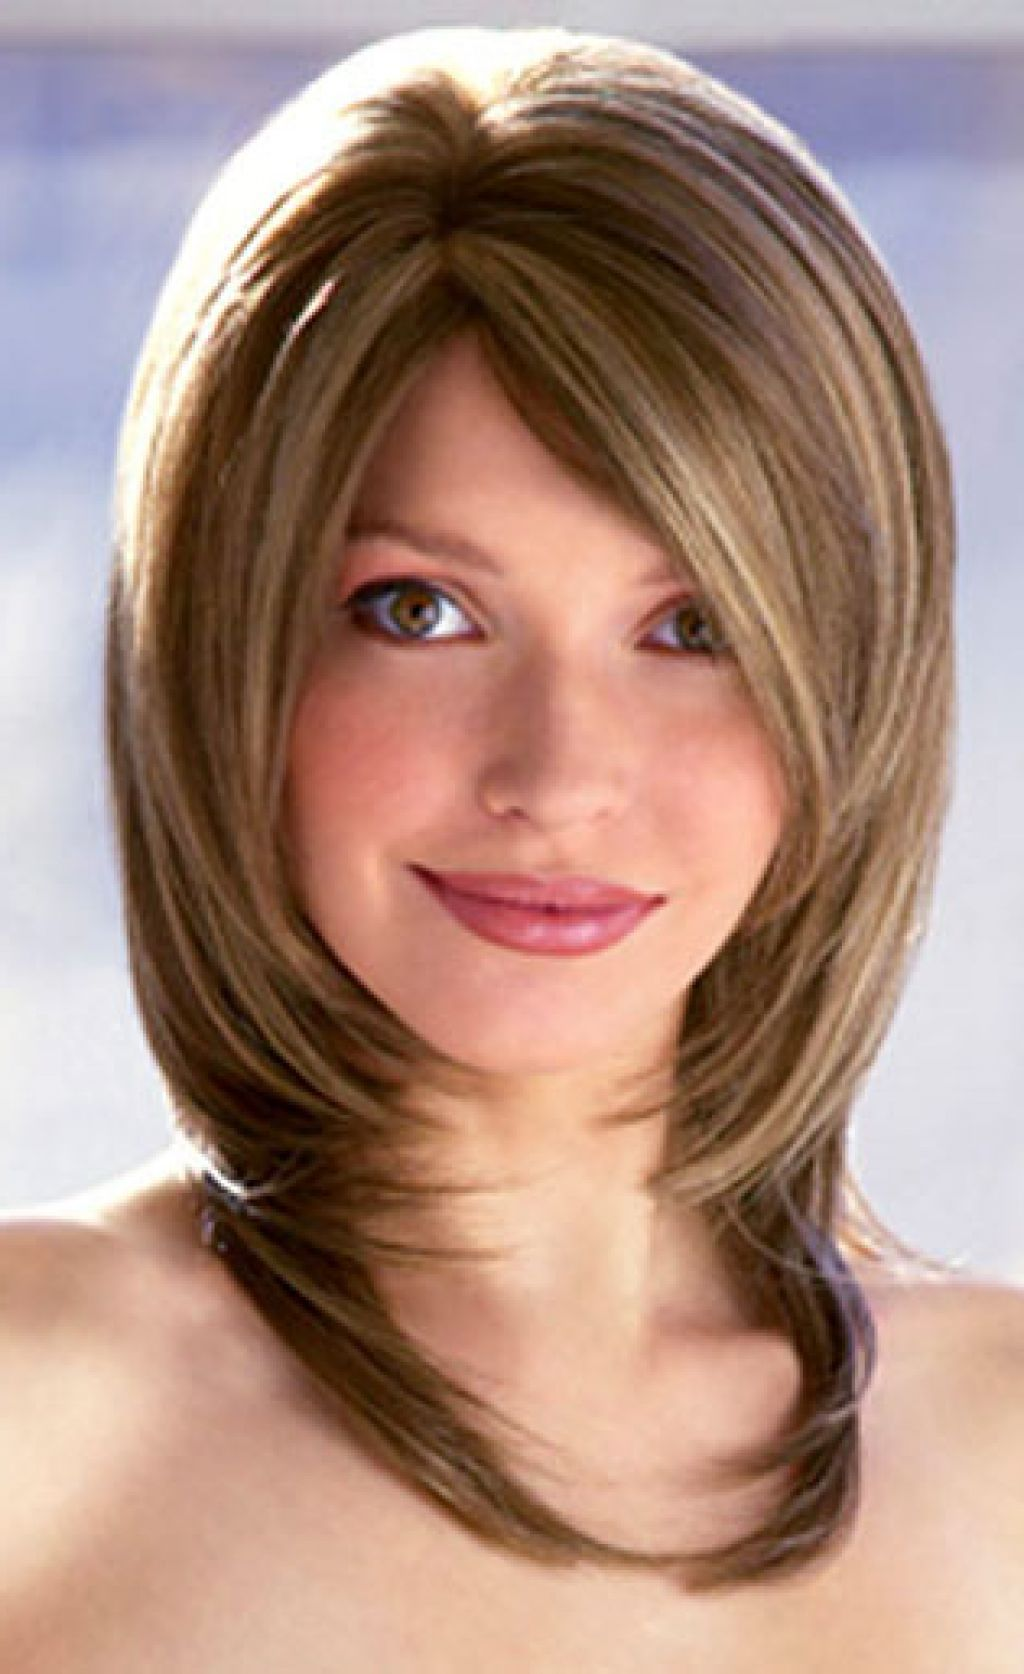 medium length bob hairstyles for round faces - Google Search | Beauty | Pinterest | Medium ...